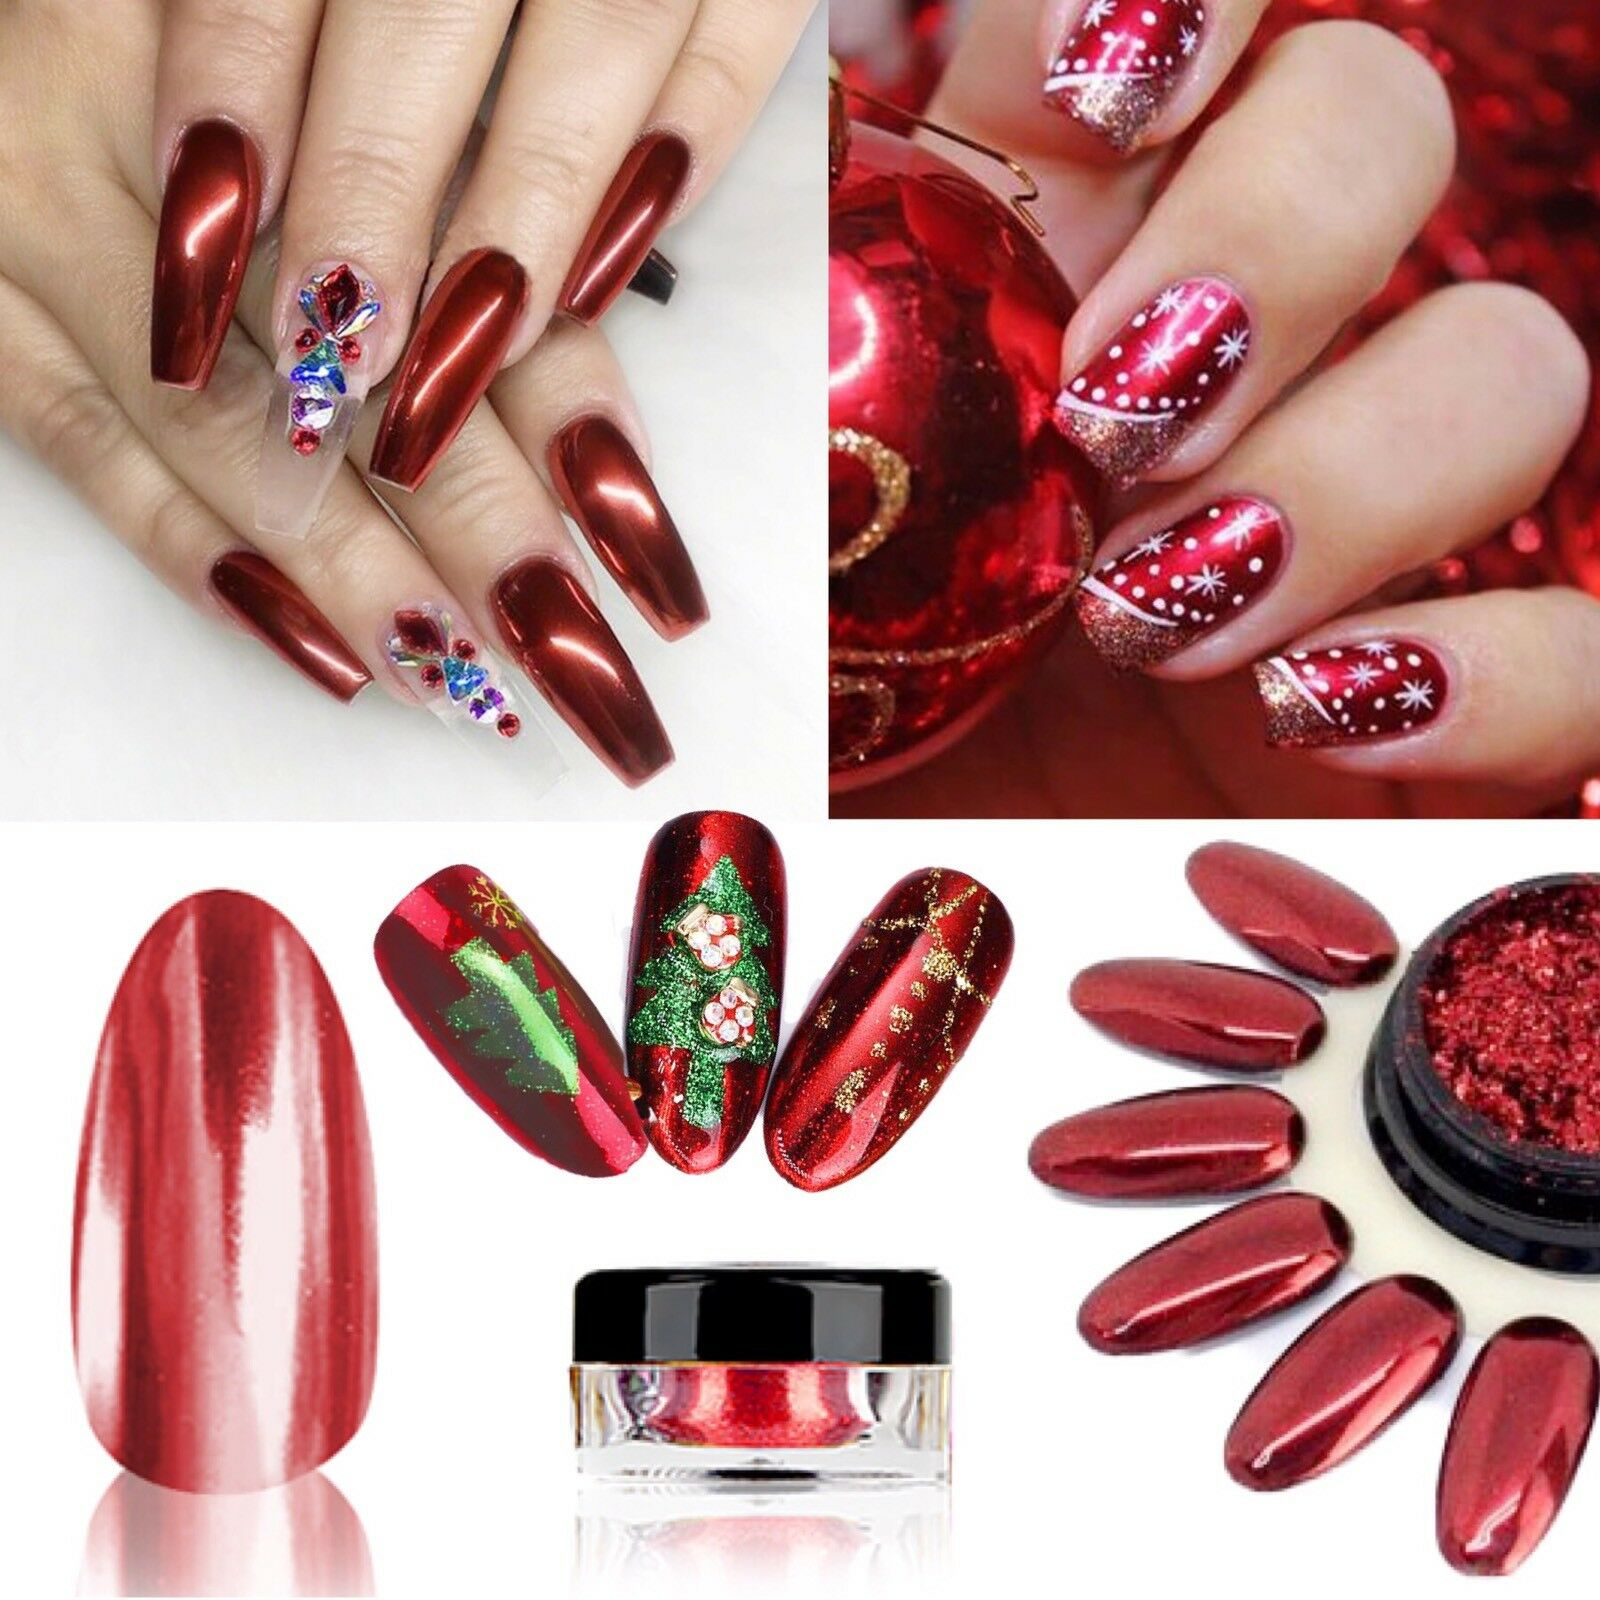 Chrome Nail Powder Cnd: RED MIRROR POWDER PLATINUM Nail Chrome Nails Pigment